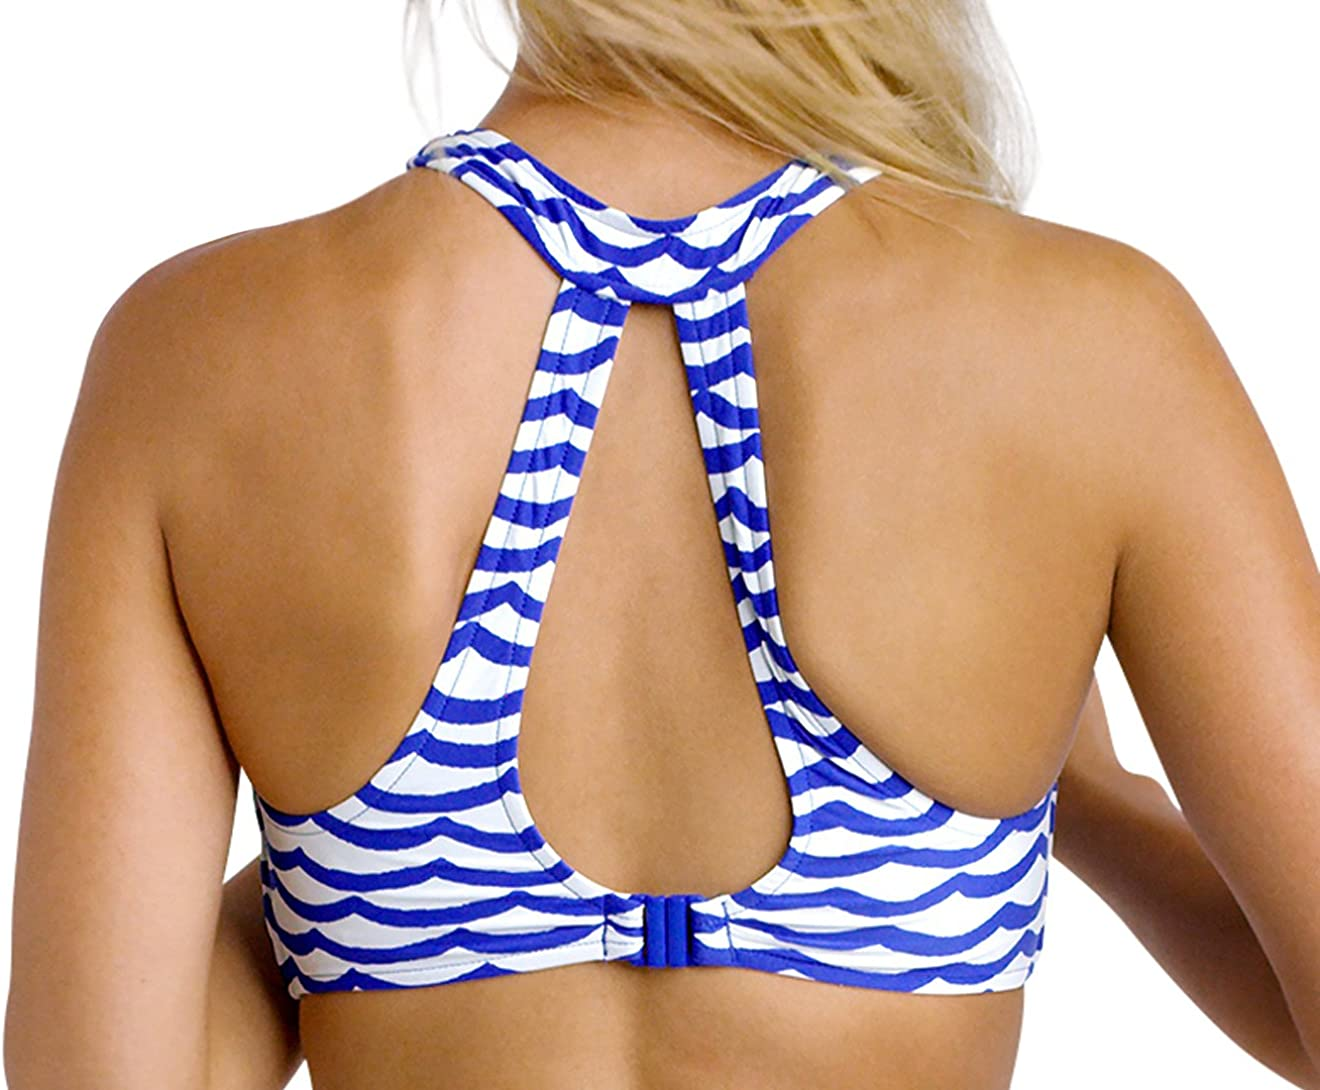 Tops-Tidal Wave-High Neck Tank Top-30588-241 Seafolly Singlet